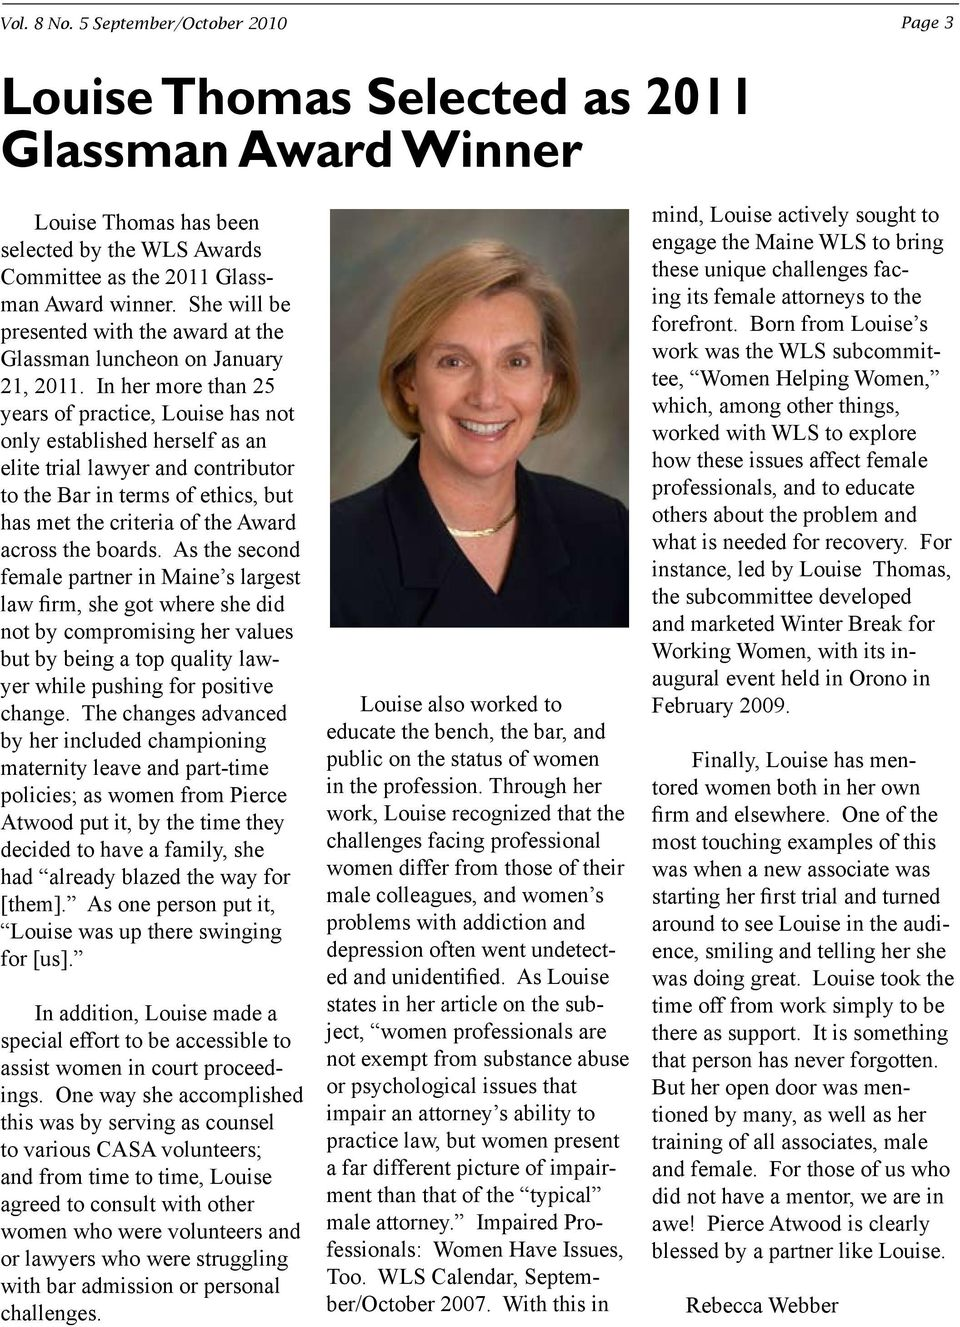 In her more than 25 years of practice, Louise has not only established herself as an elite trial lawyer and contributor to the Bar in terms of ethics, but has met the criteria of the Award across the